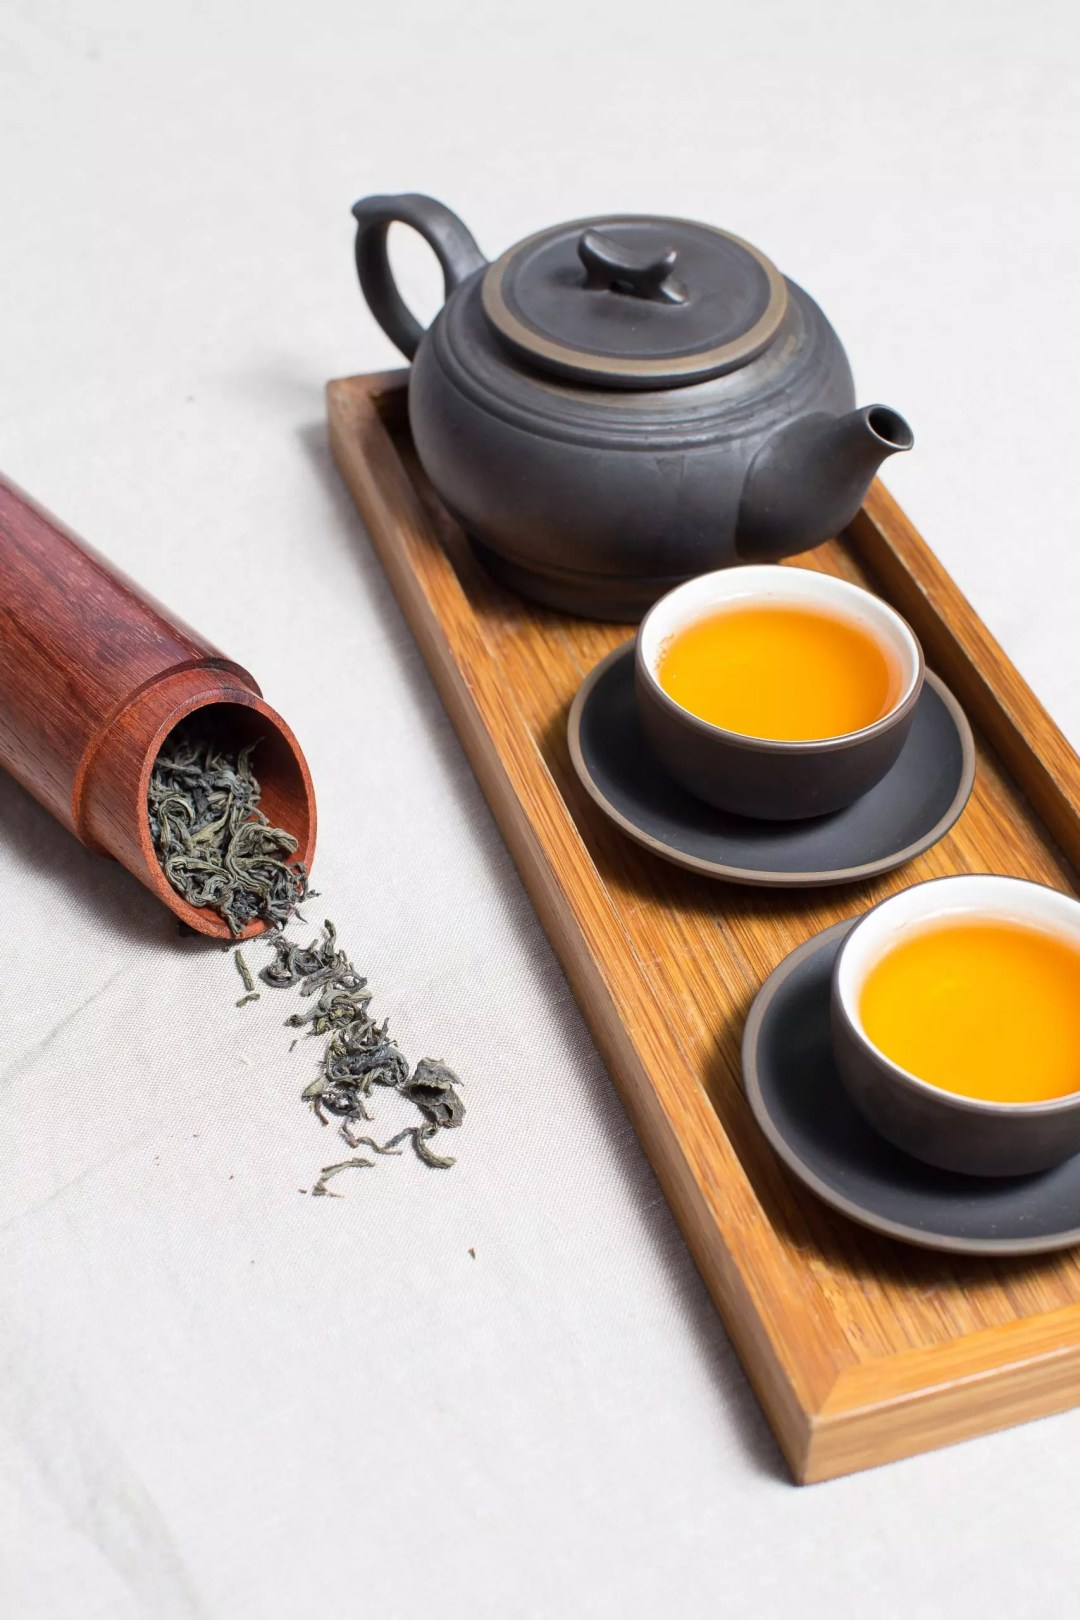 , REVEALED: Shocking link between tea drinking and EVERYTHING BAD!